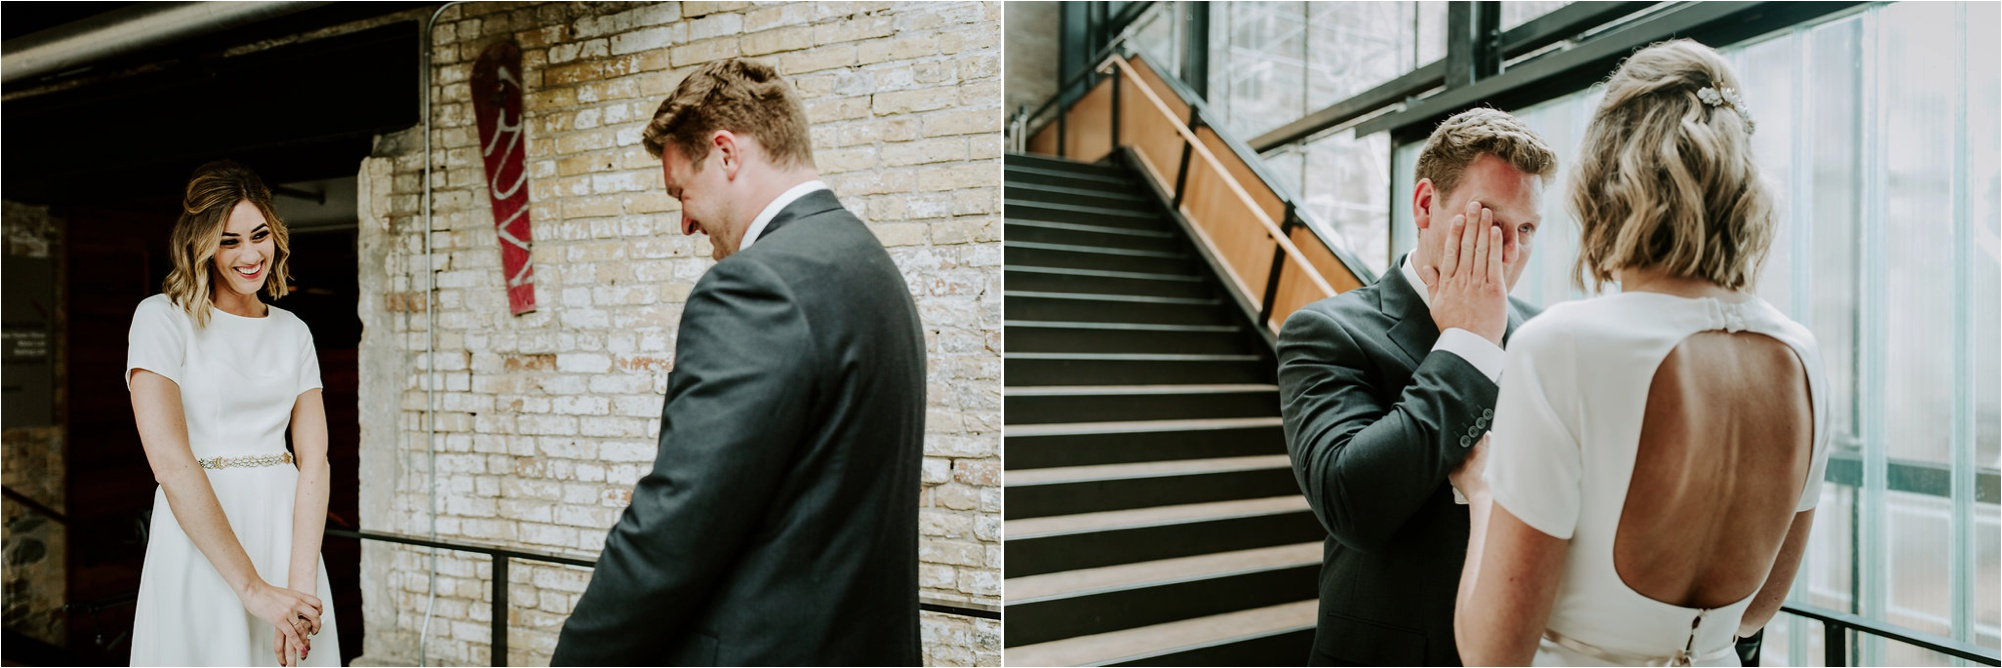 Mill City Museum Minneapolis Industrial Wedding Photographer_3340.jpg